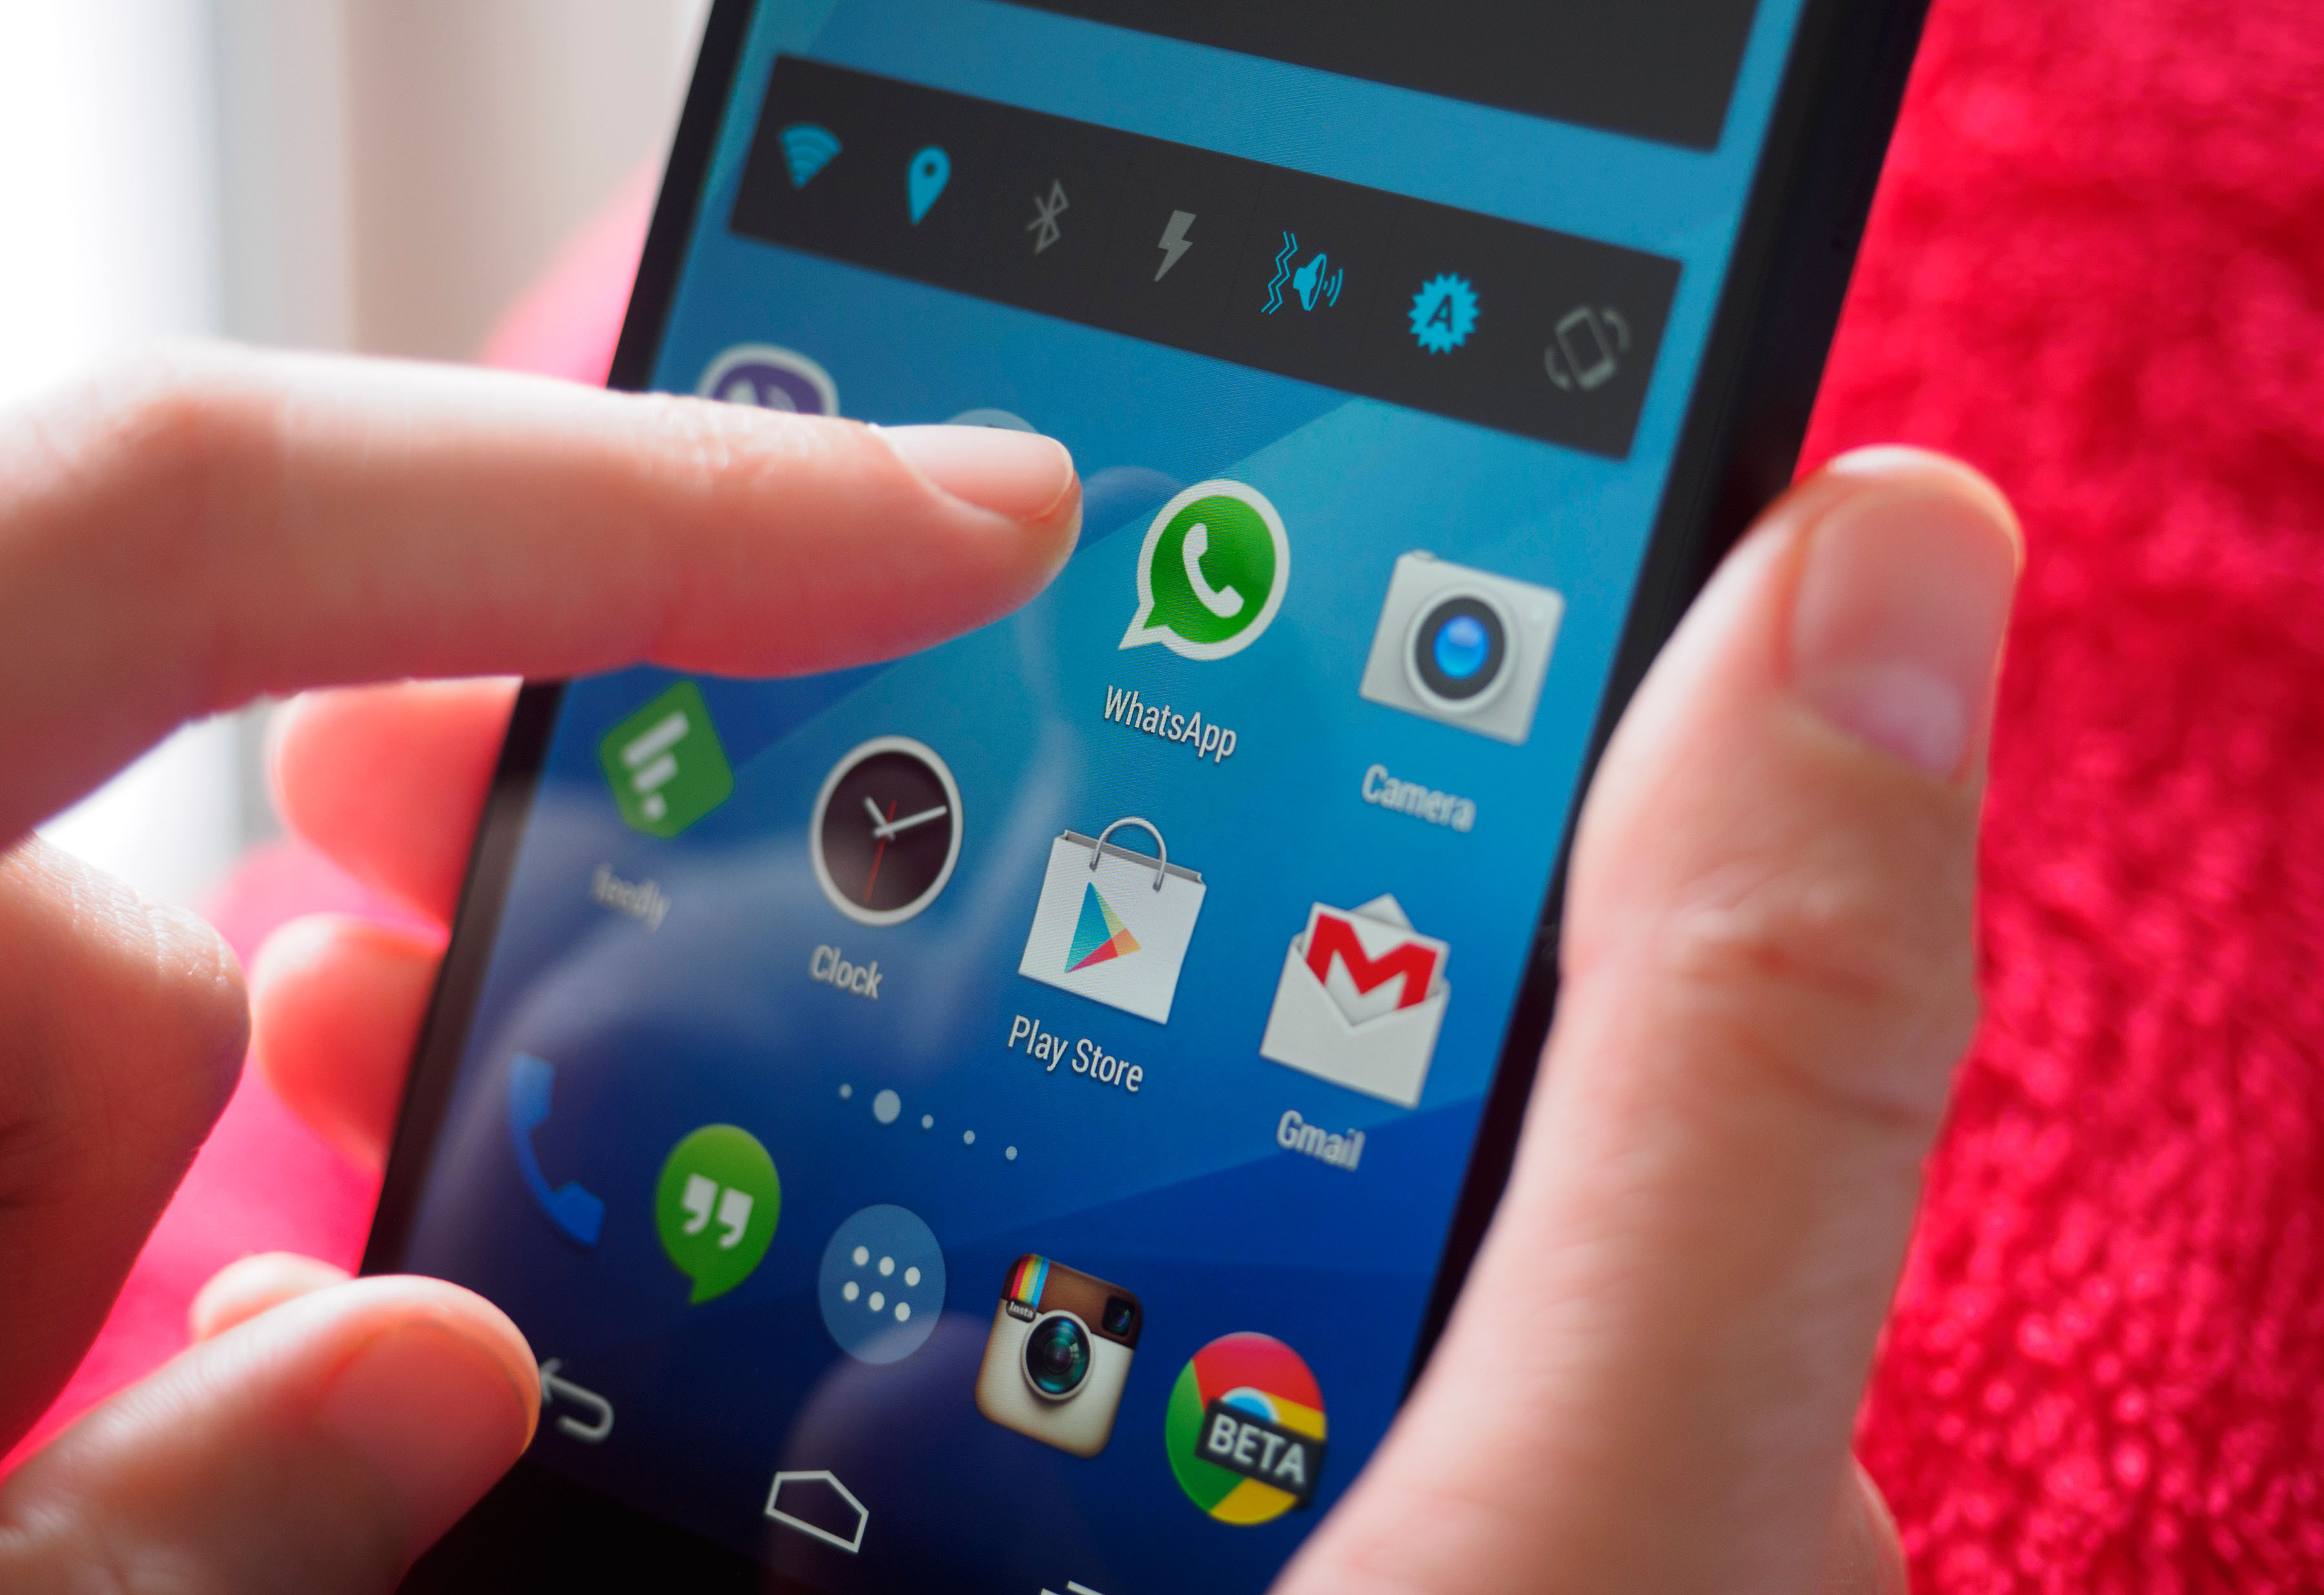 Stevenage and Hereford had the biggest surge in data usage on communications apps